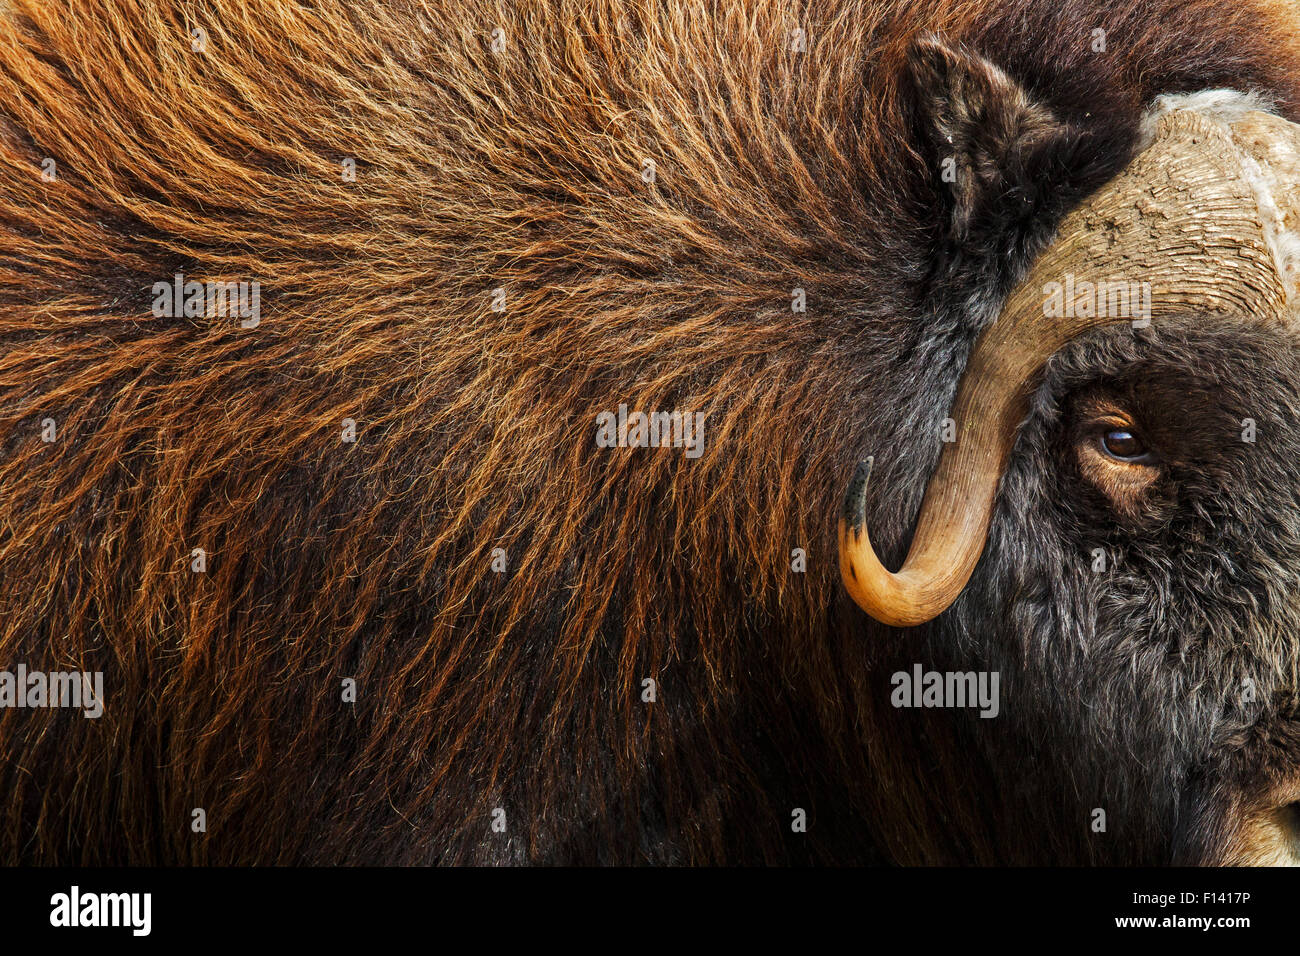 Musk ox (Ovibos moschatus) close up, Norway, September. - Stock Image